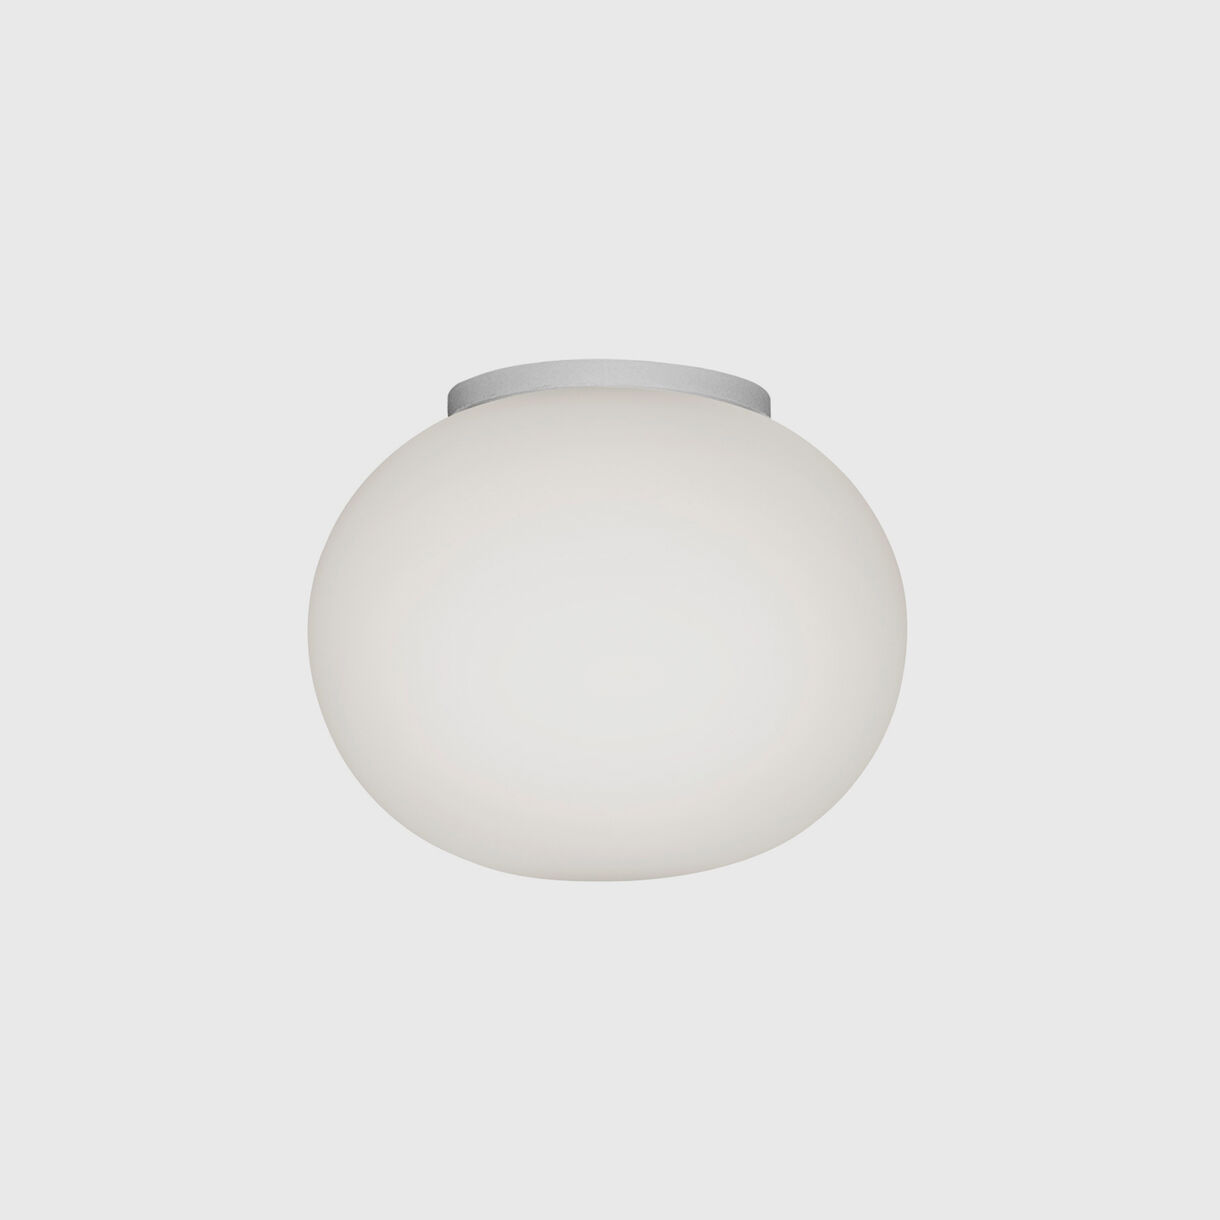 Mini Glo-Ball, Ceiling & Wall, On